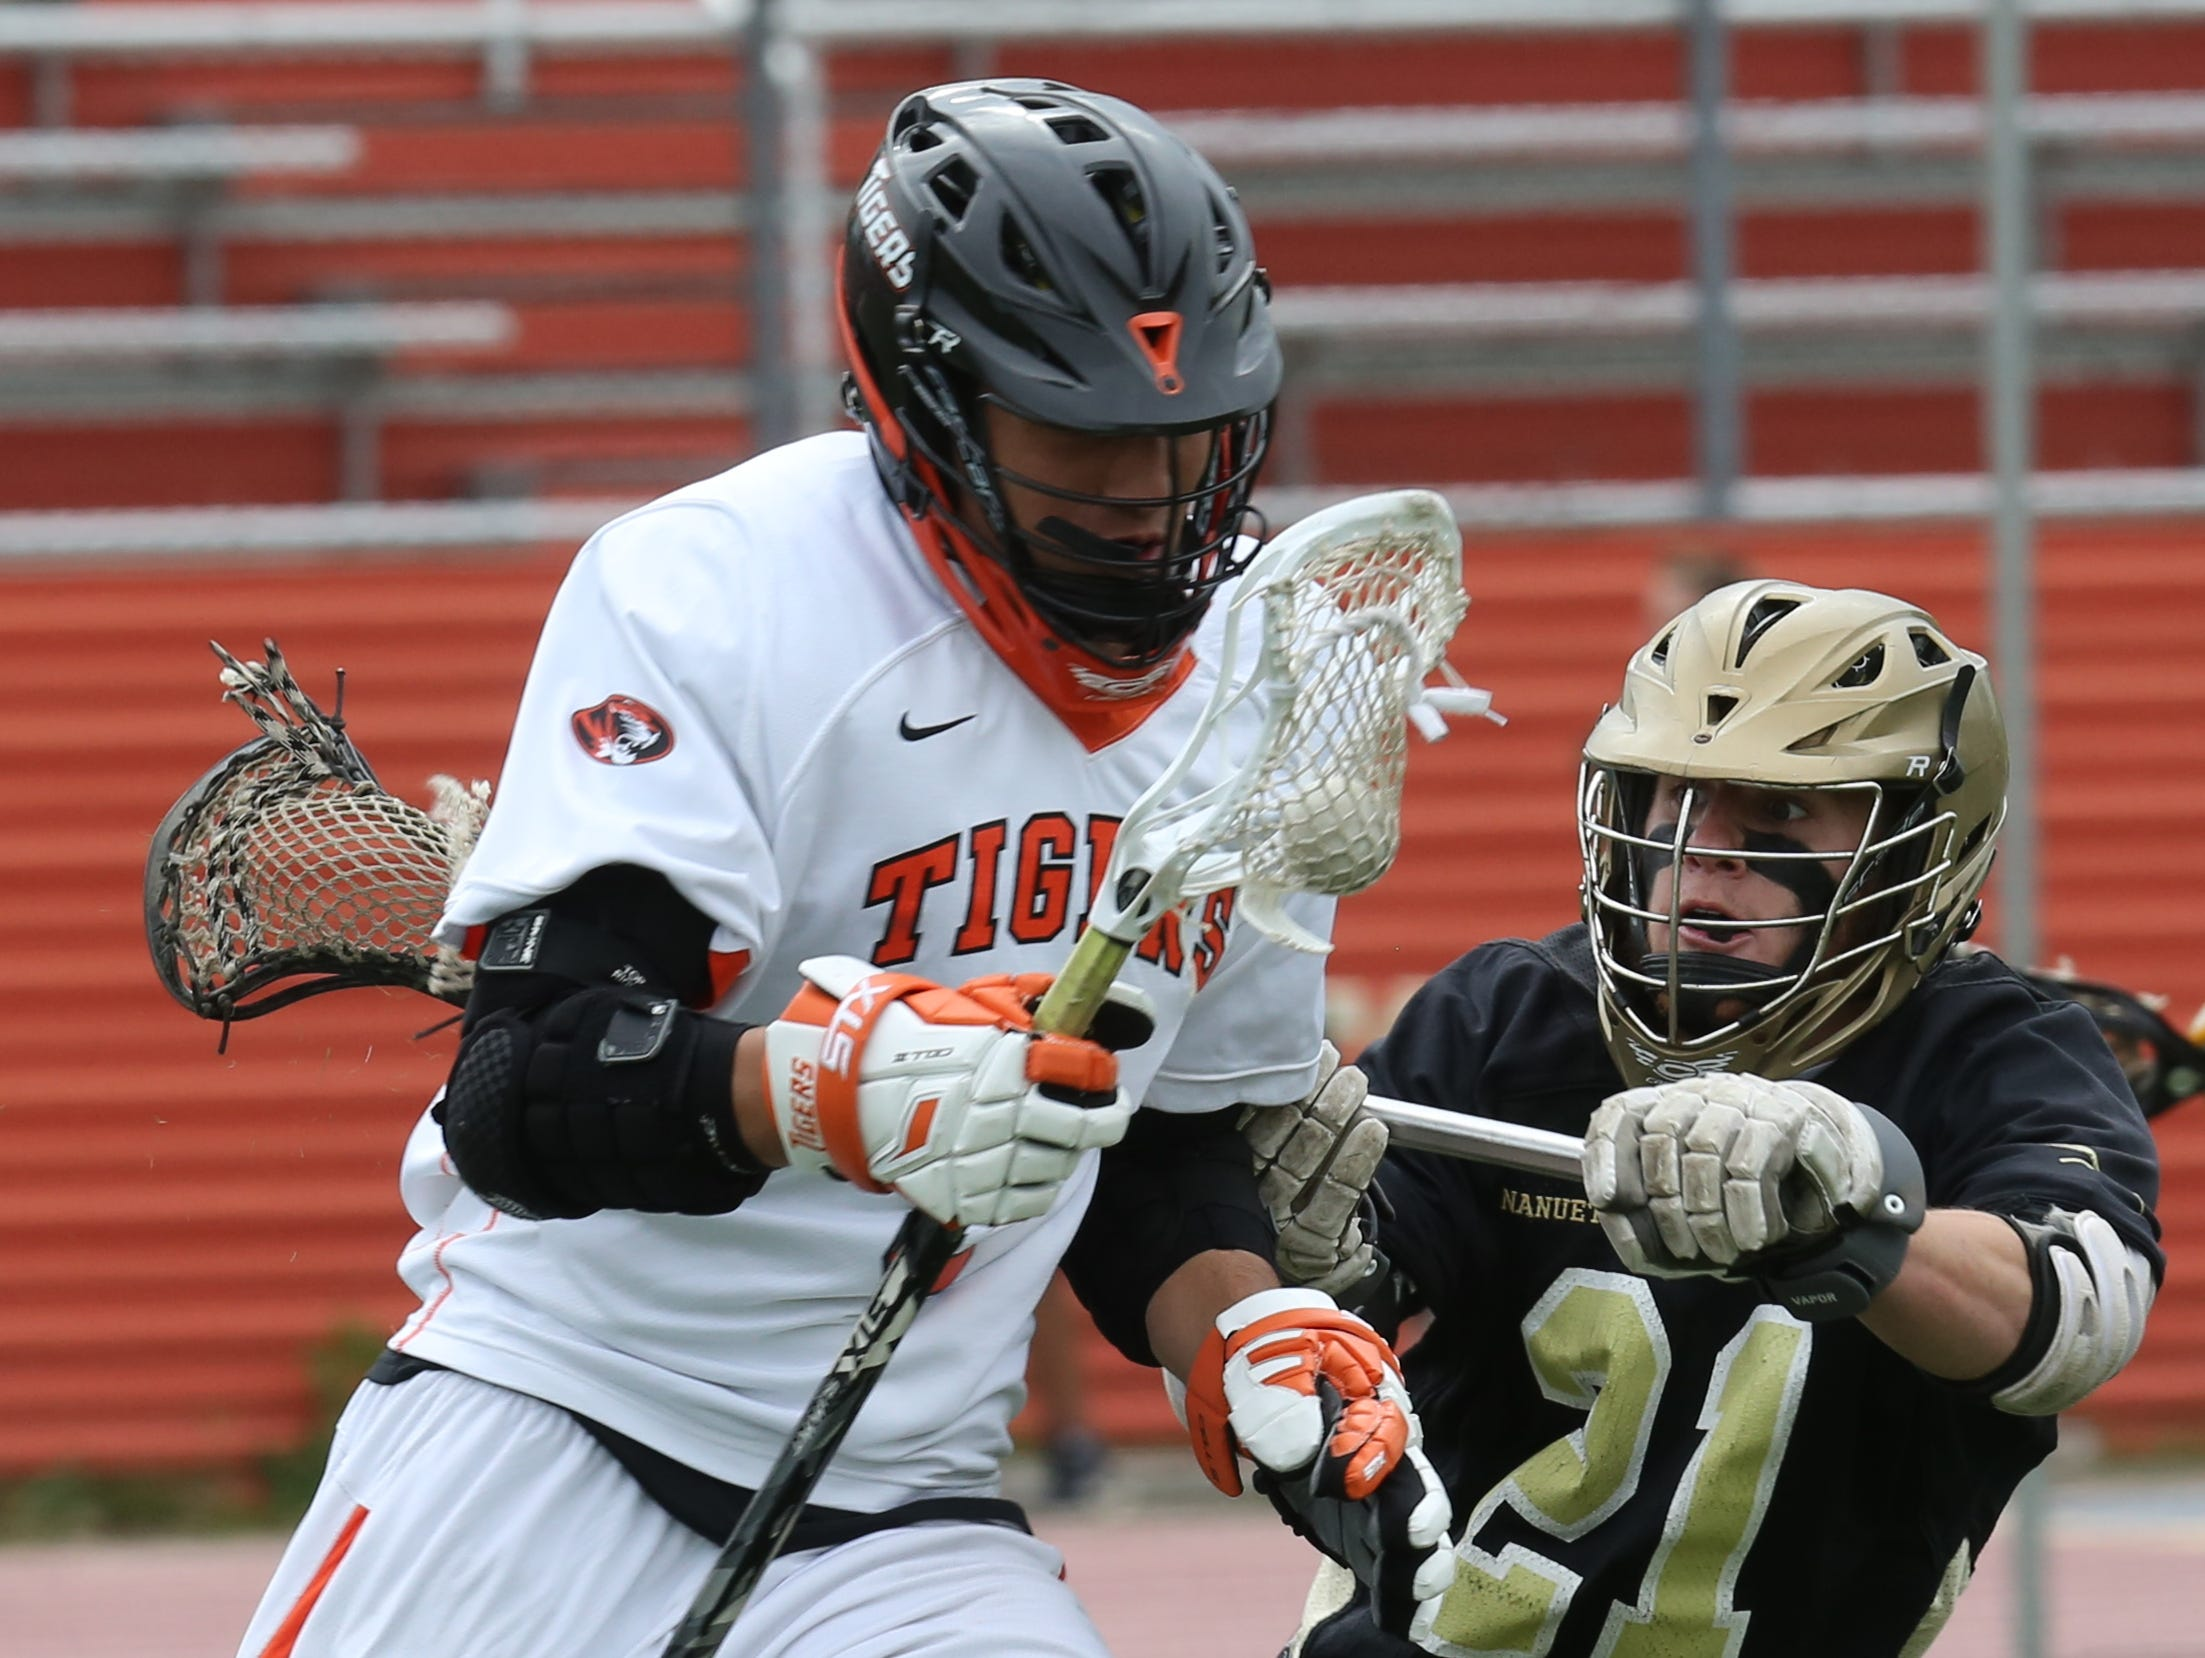 Nanuet's Brian McGreevy (21) tries to steal the ball from Leo DeSousa (5) of White Plains during boys lacrosse game at White Plains High School May 10, 2016. White Plains defeats Nanuet 14-4.